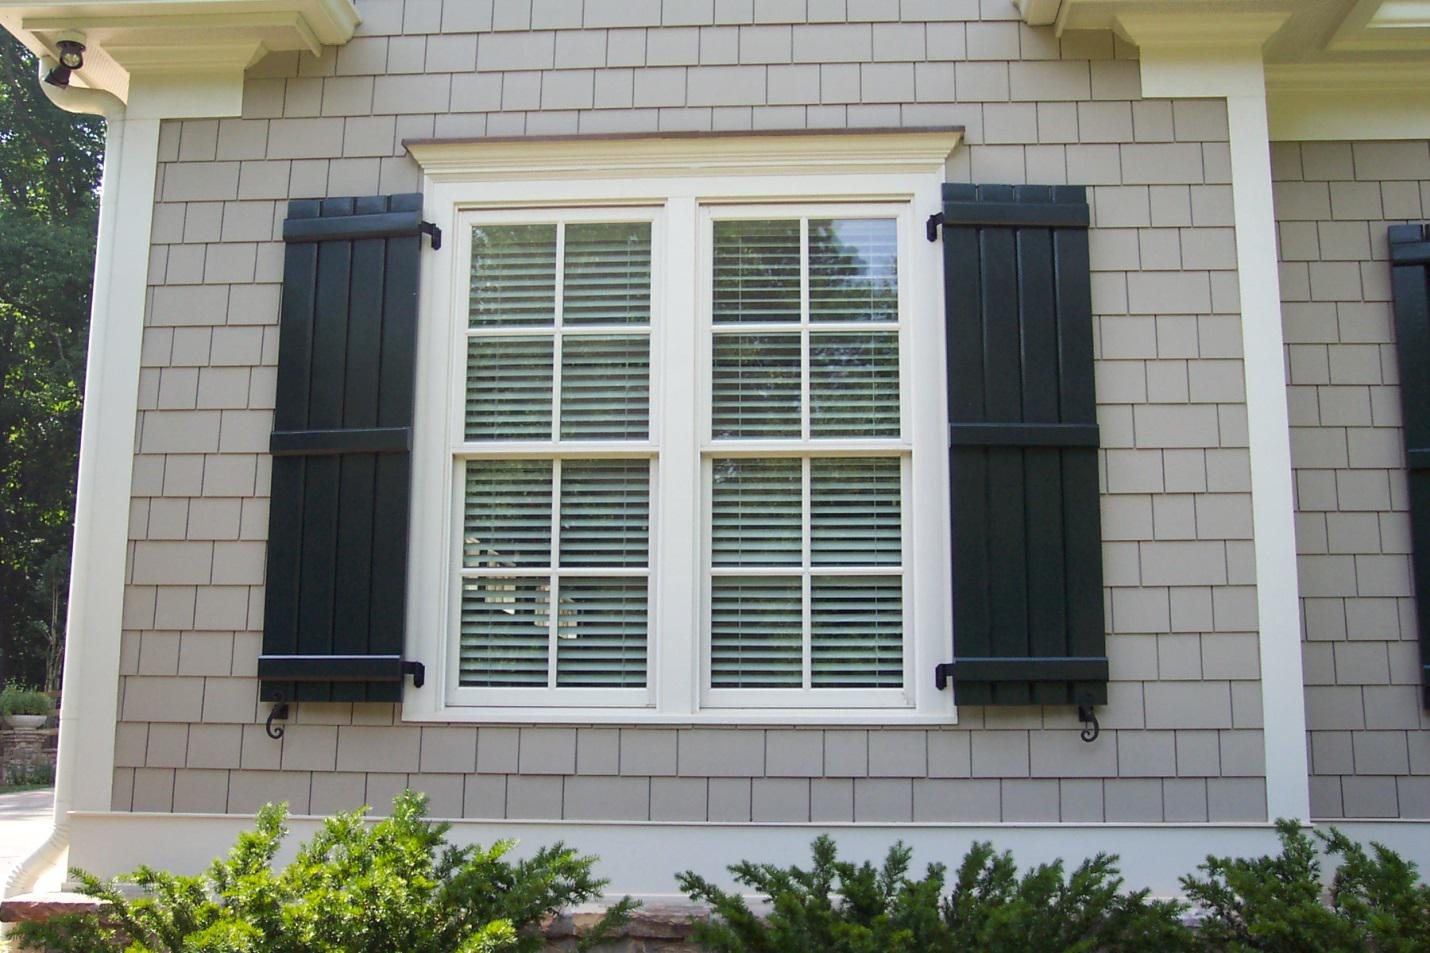 Decorative Exterior Shutters For Windows The Hippest Pics